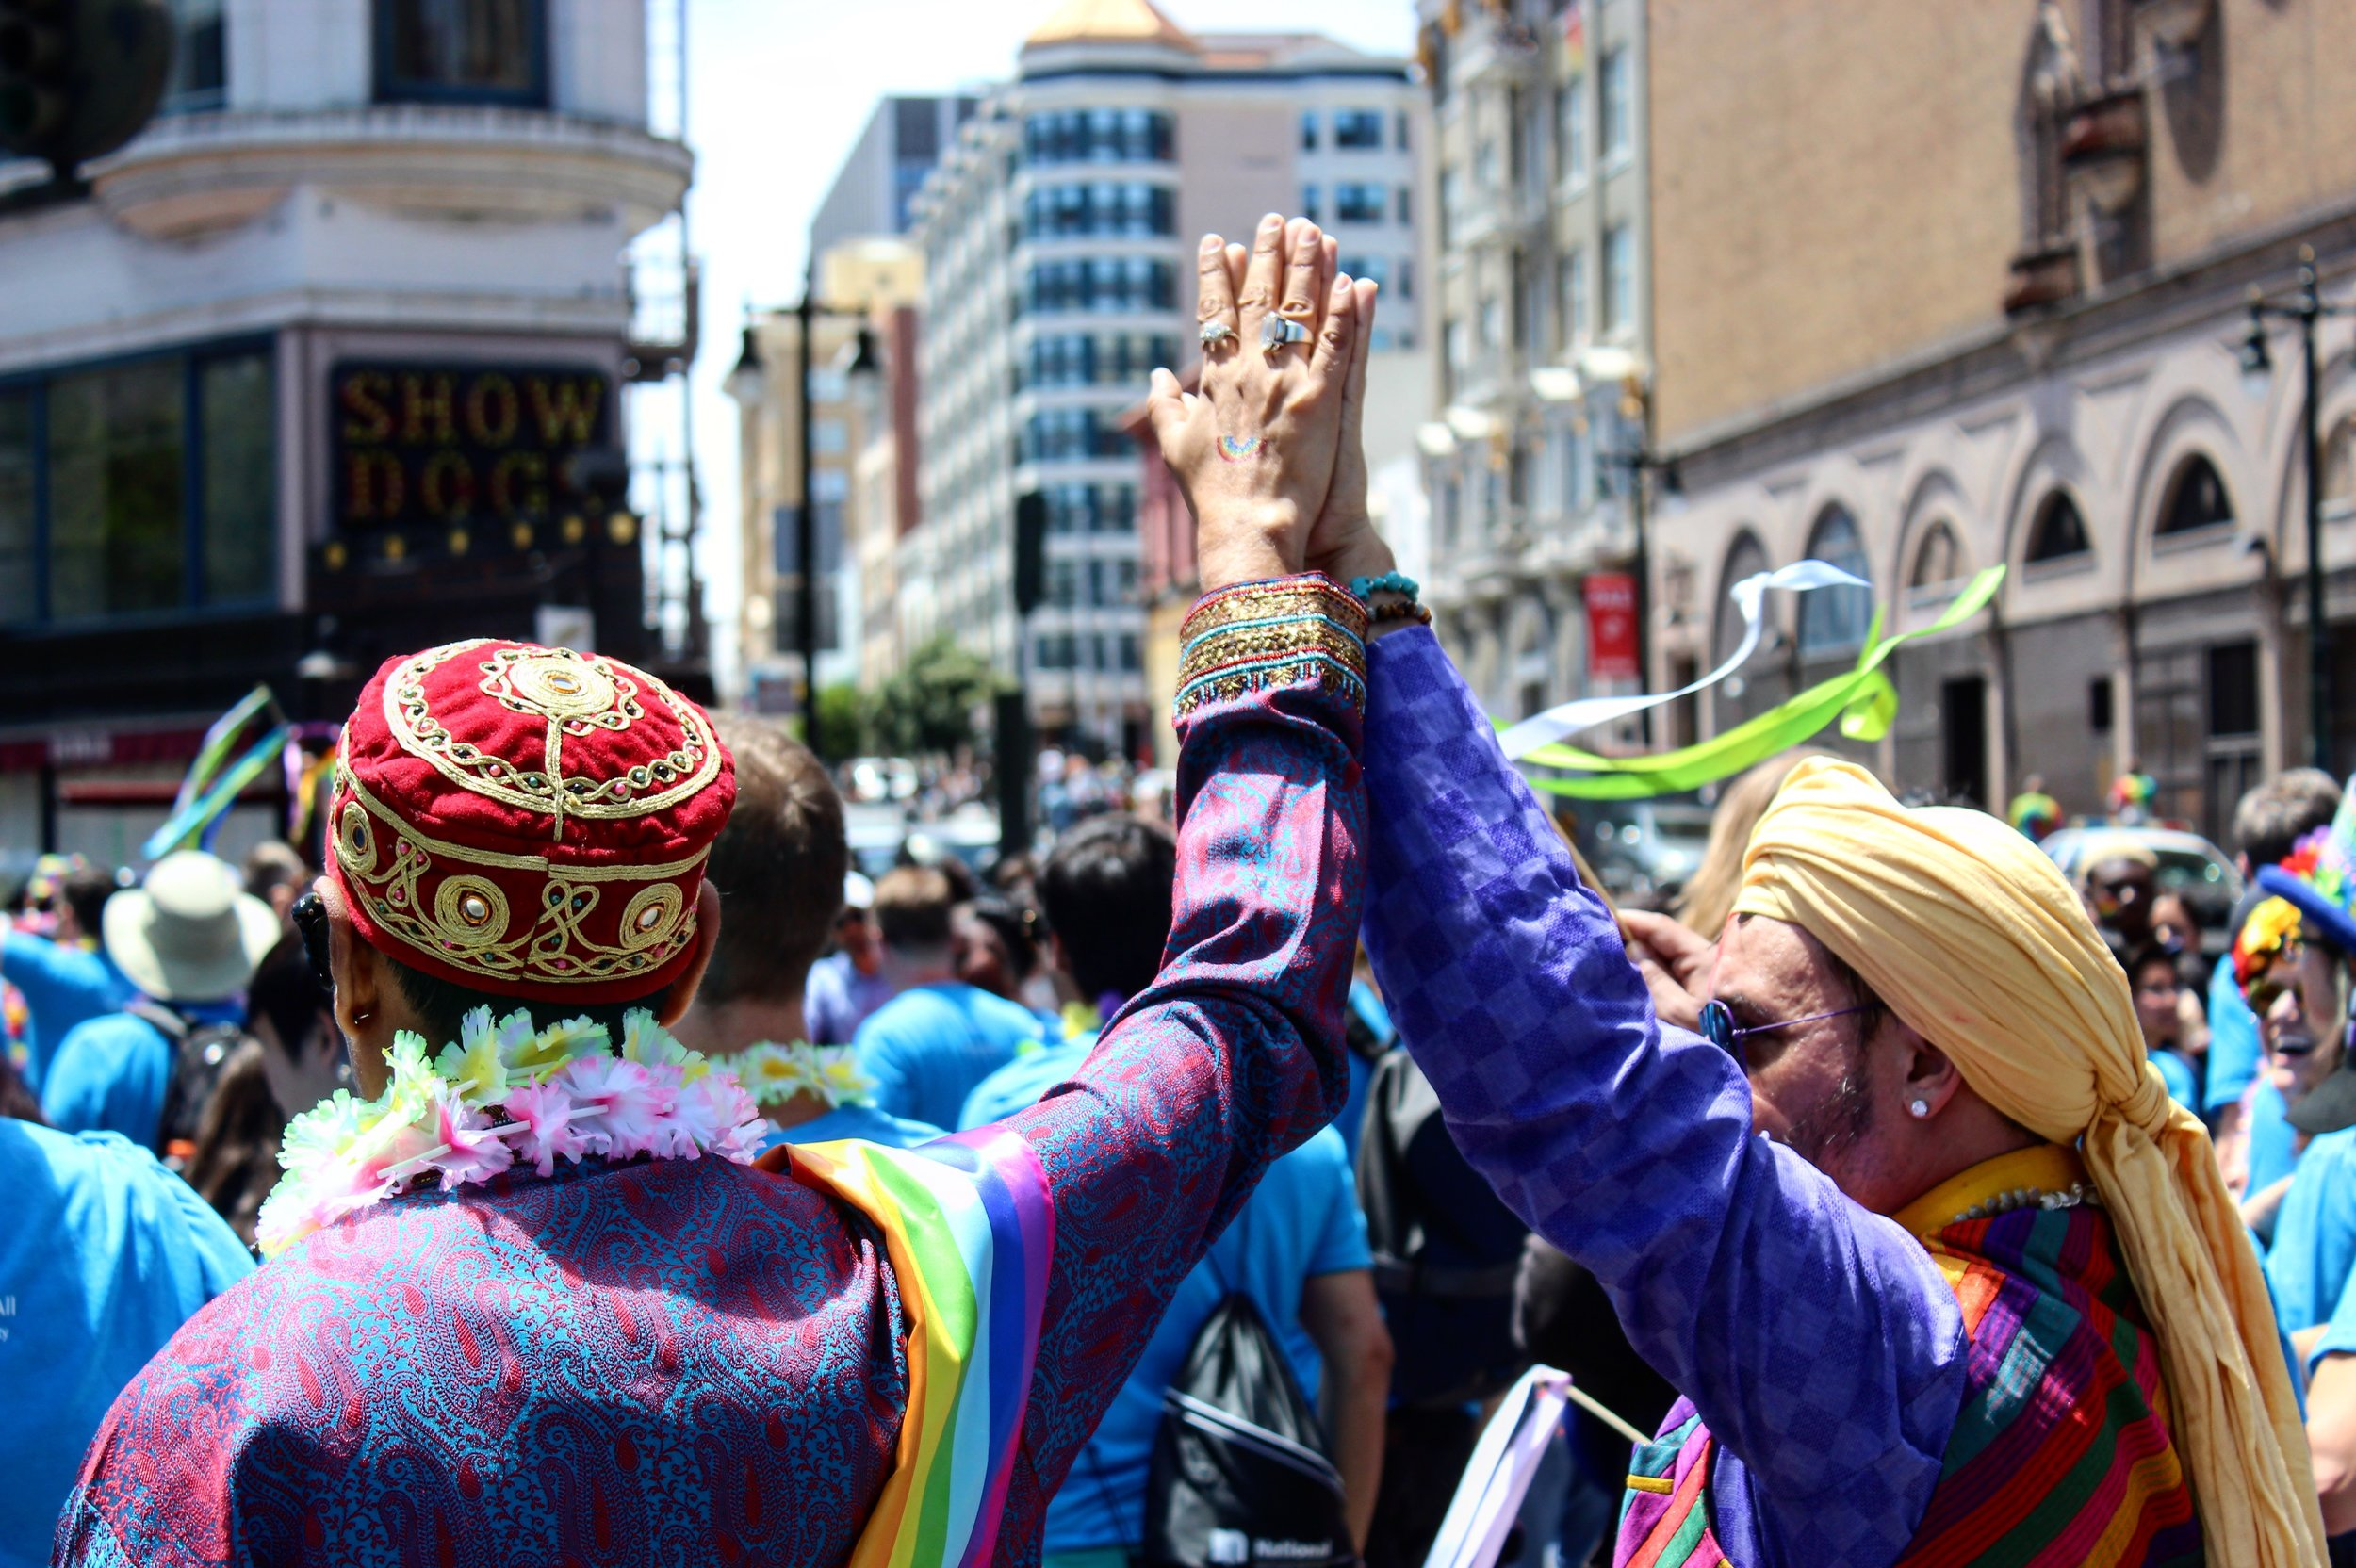 Two men raise their hands together in unity during the 2017 San Francisco Pride Parade.